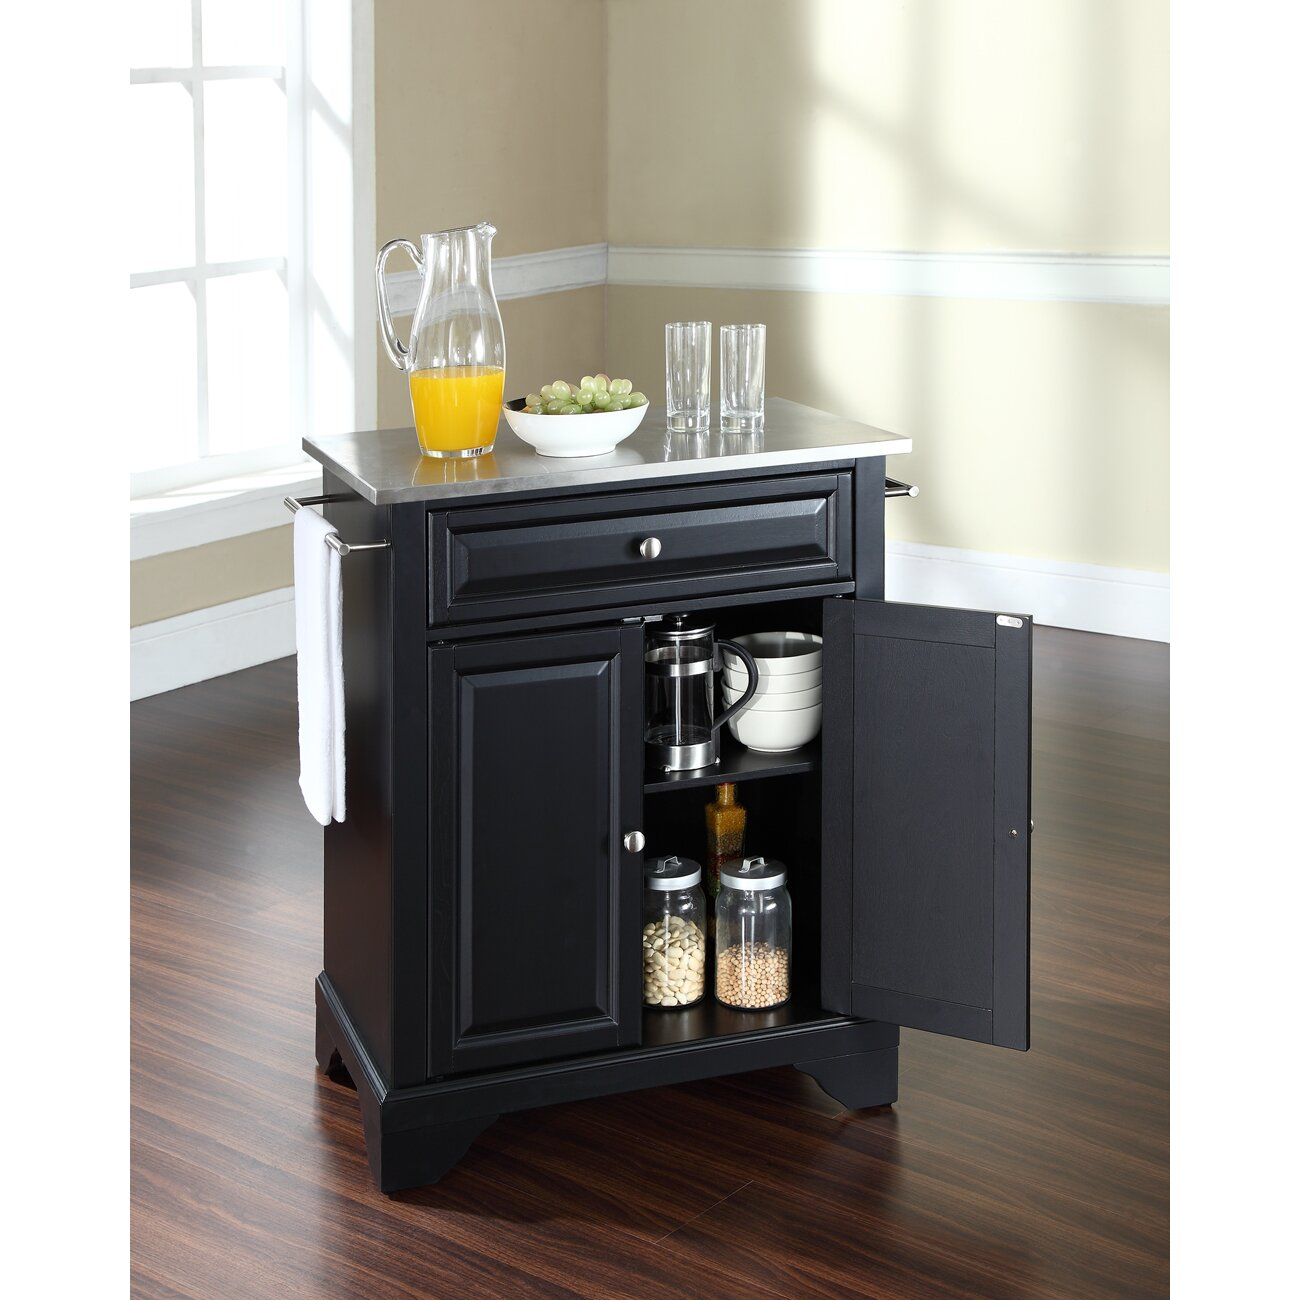 Stainless Kitchen Cart: LaFayette Kitchen Cart With Stainless Steel Top